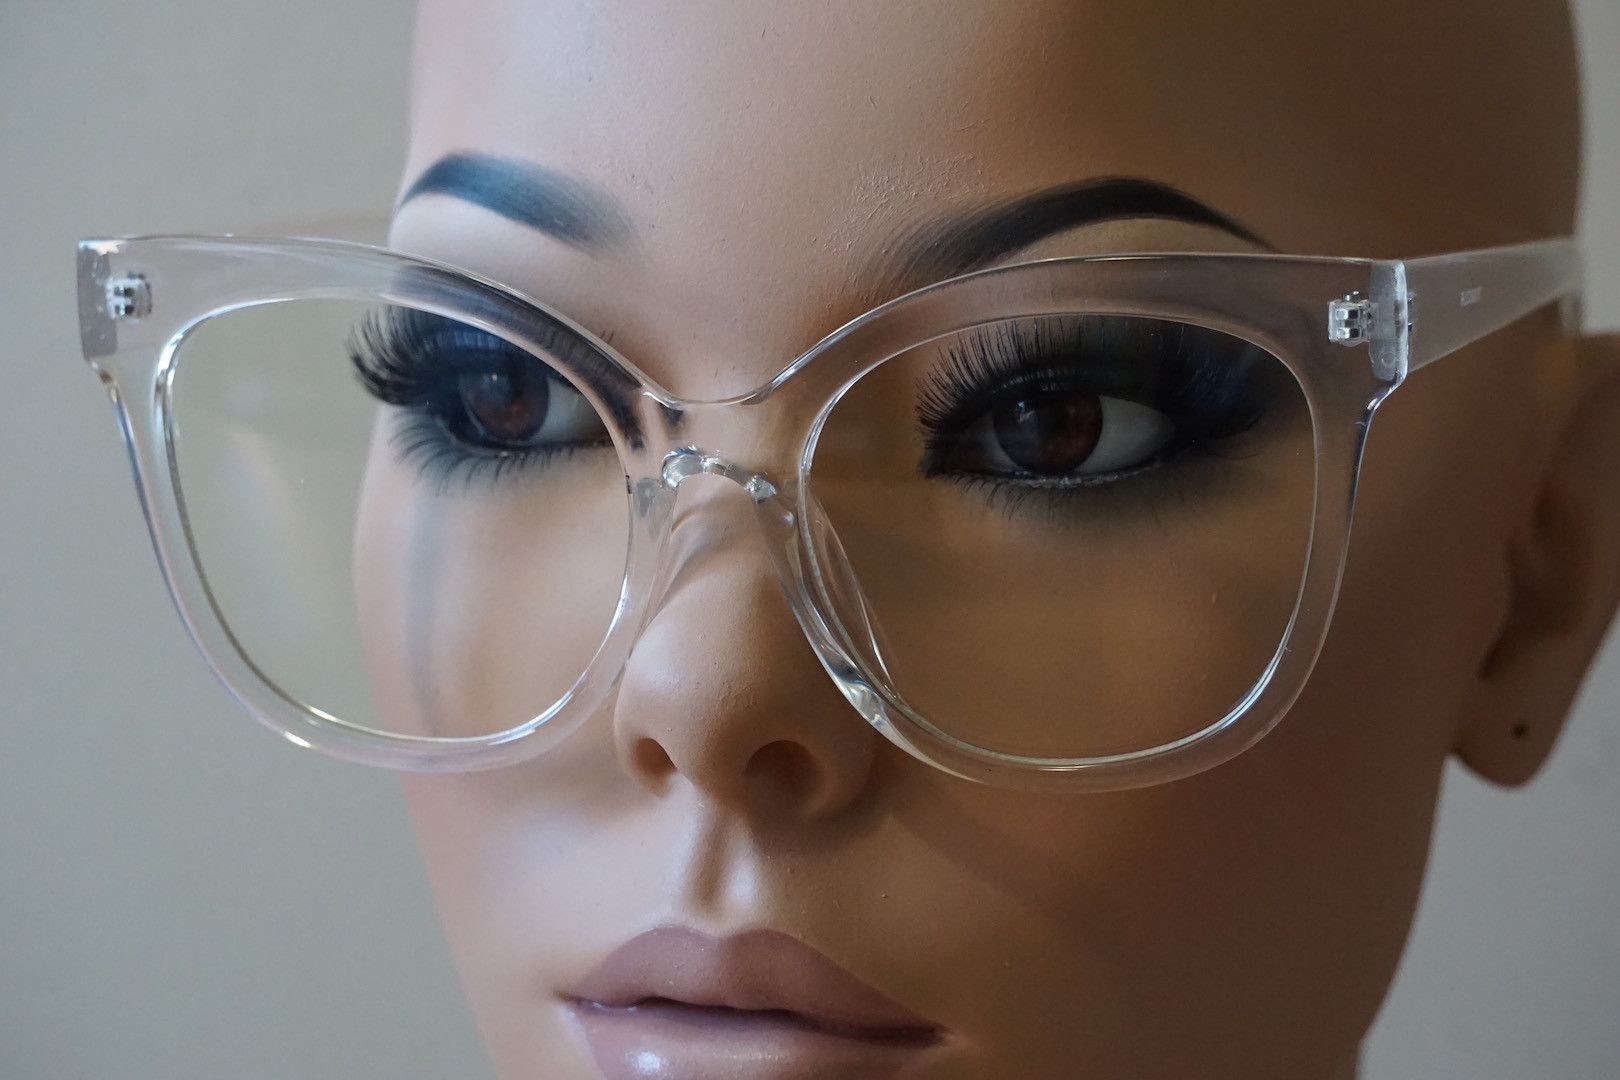 d00b82de03a Style  7030Clr. Find this Pin and more on ME! by yolanda daniel. Tags.  Fashion Eye Glasses